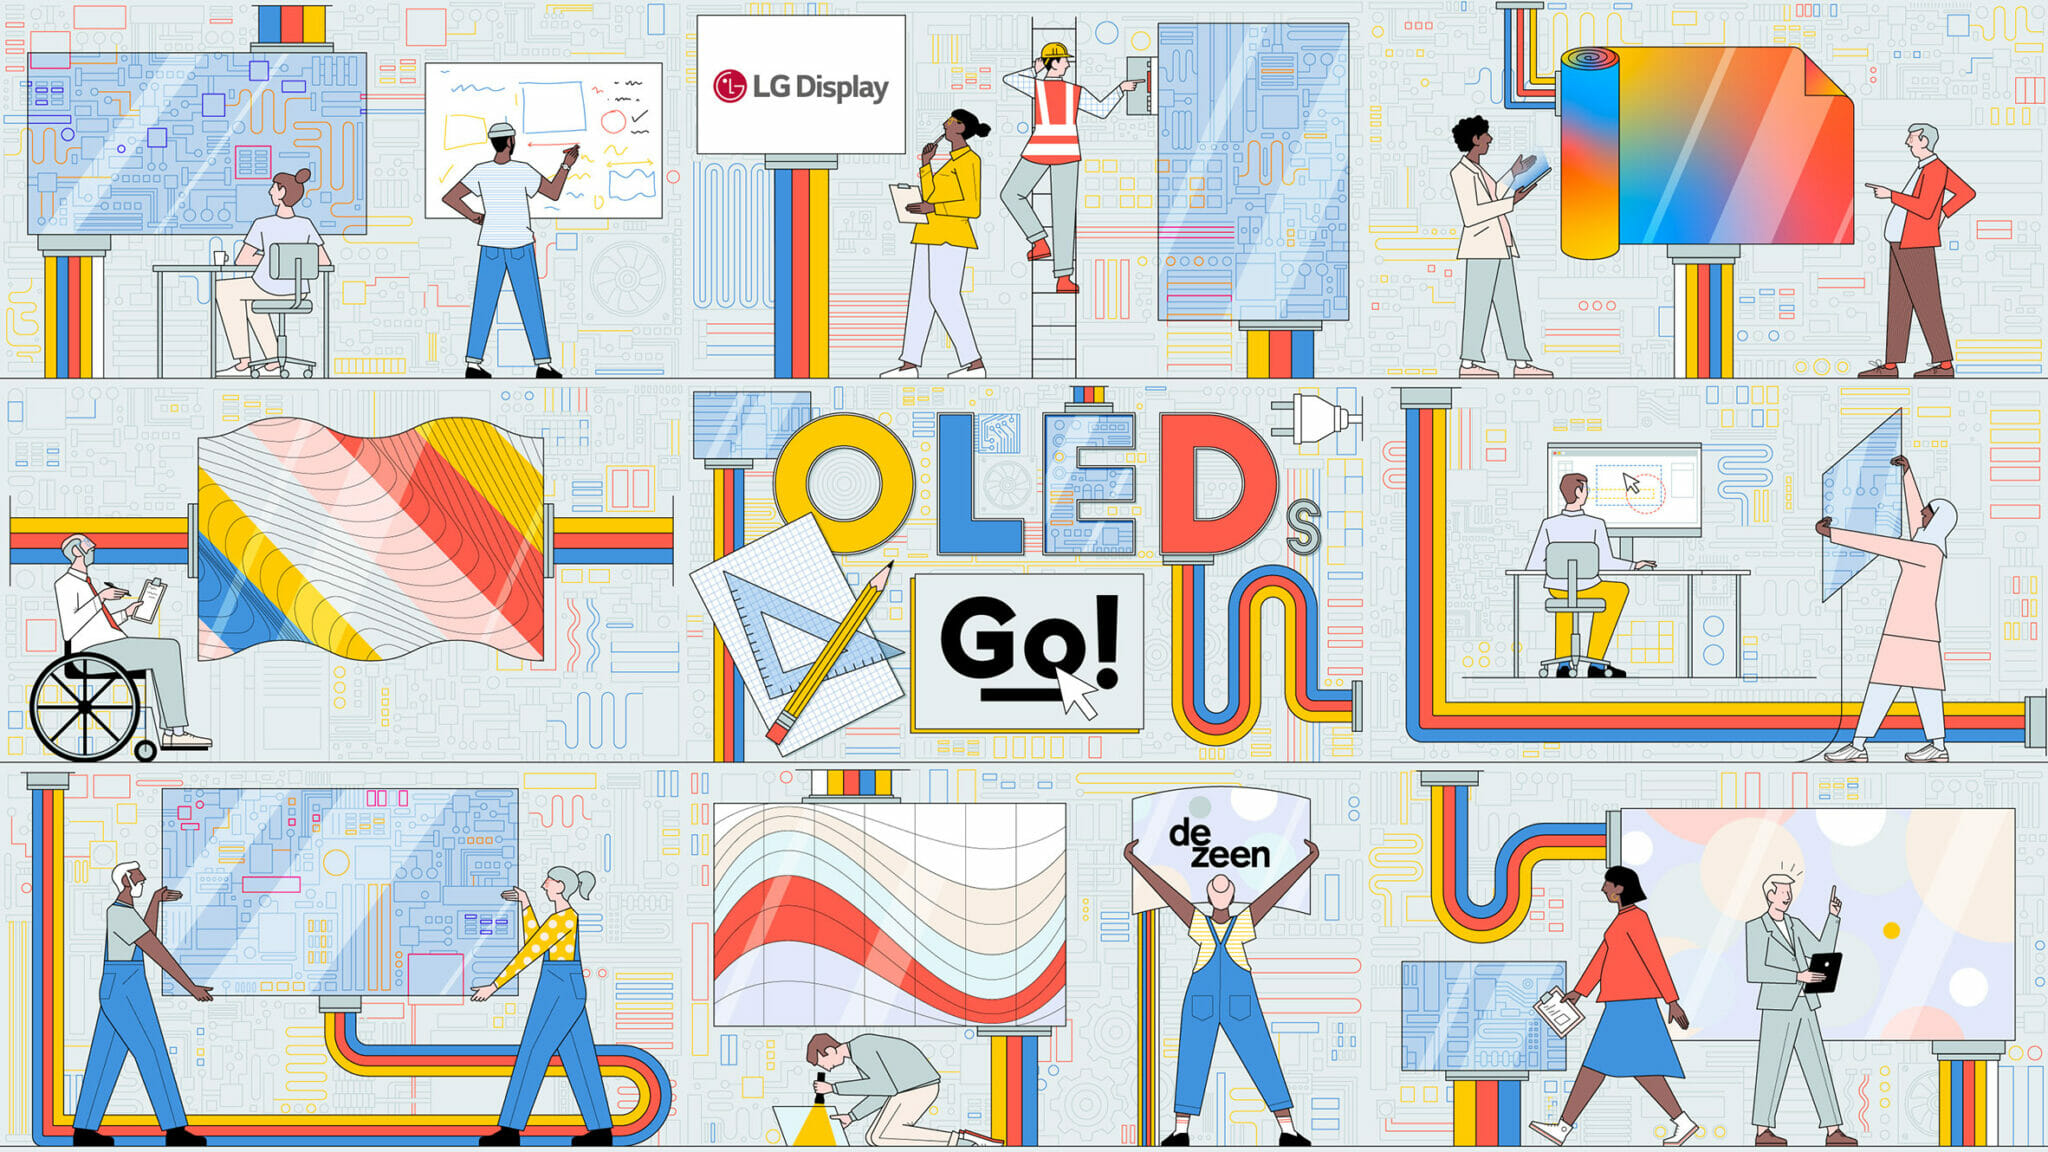 LG Display And Dezeen's Oleds Go Competition